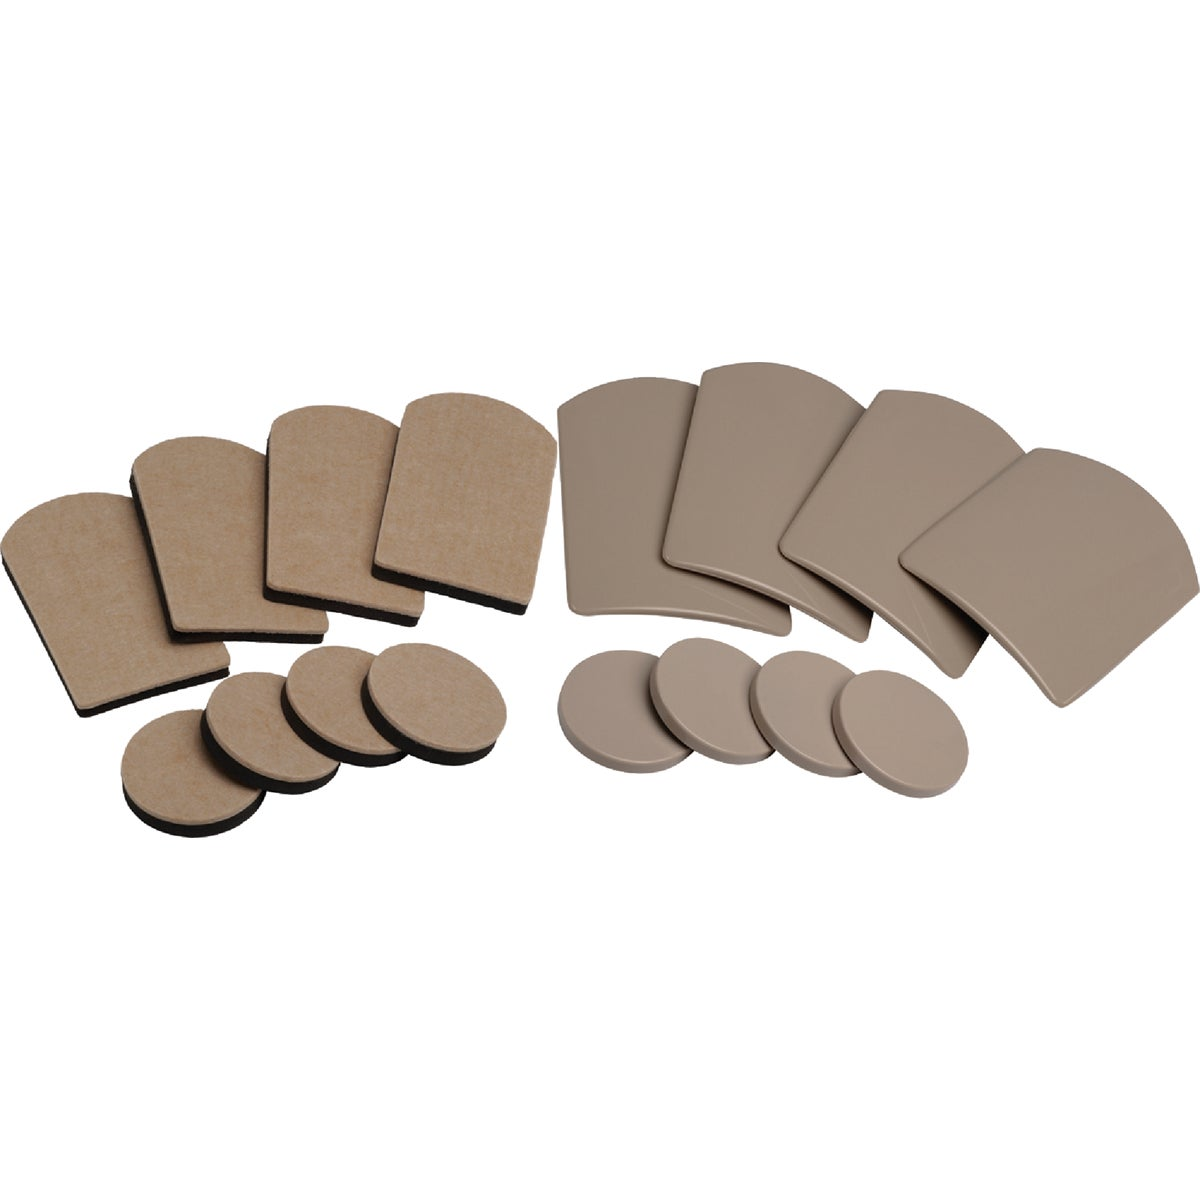 16PC EASY MOVER PADS - 242535 by Shepherd Hardware